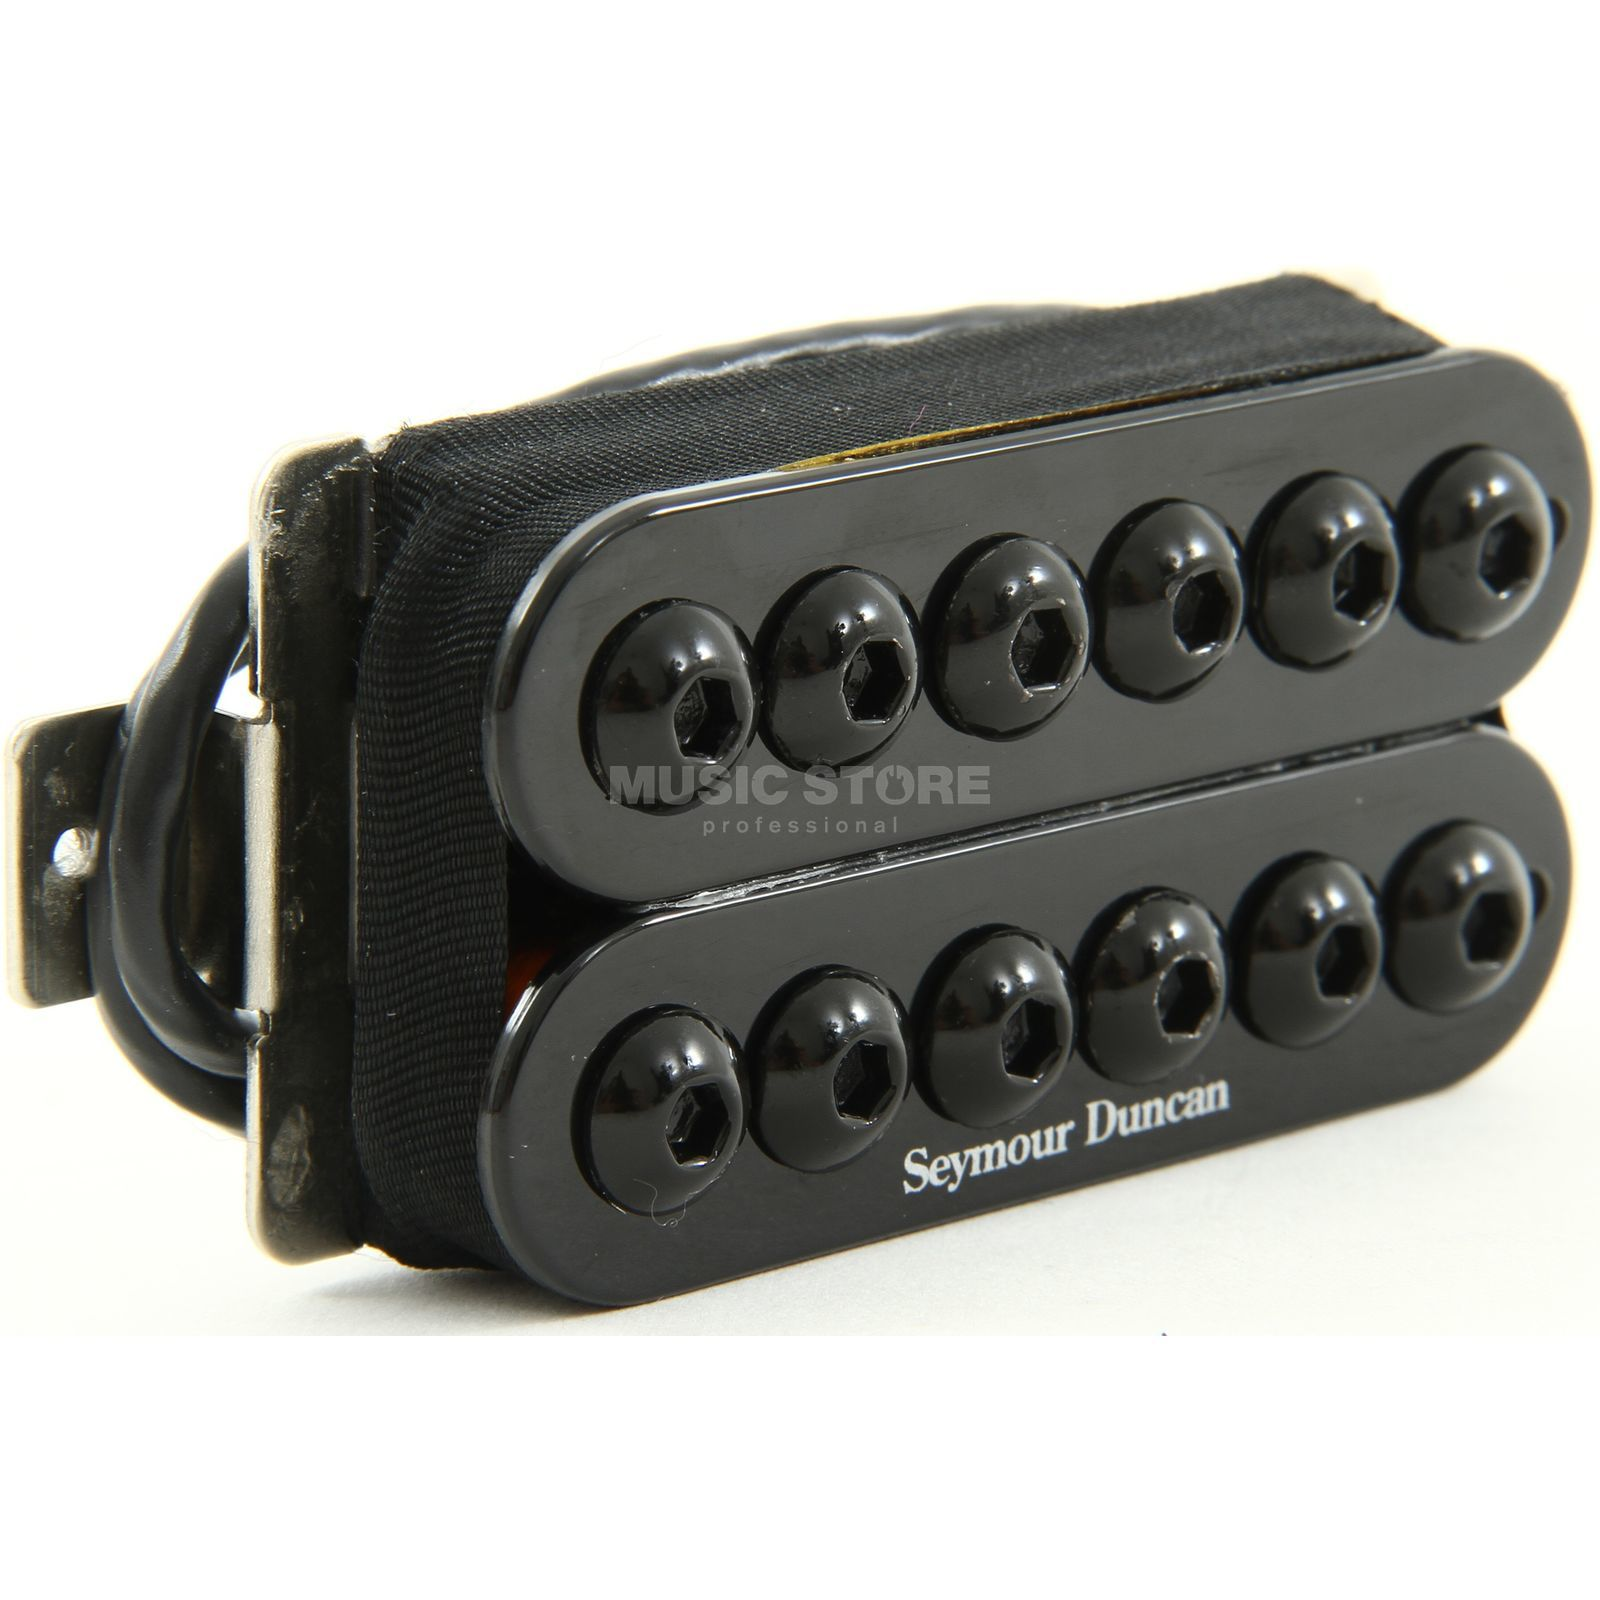 Seymour Duncan Invader Modell Neck black 4-phase Product Image